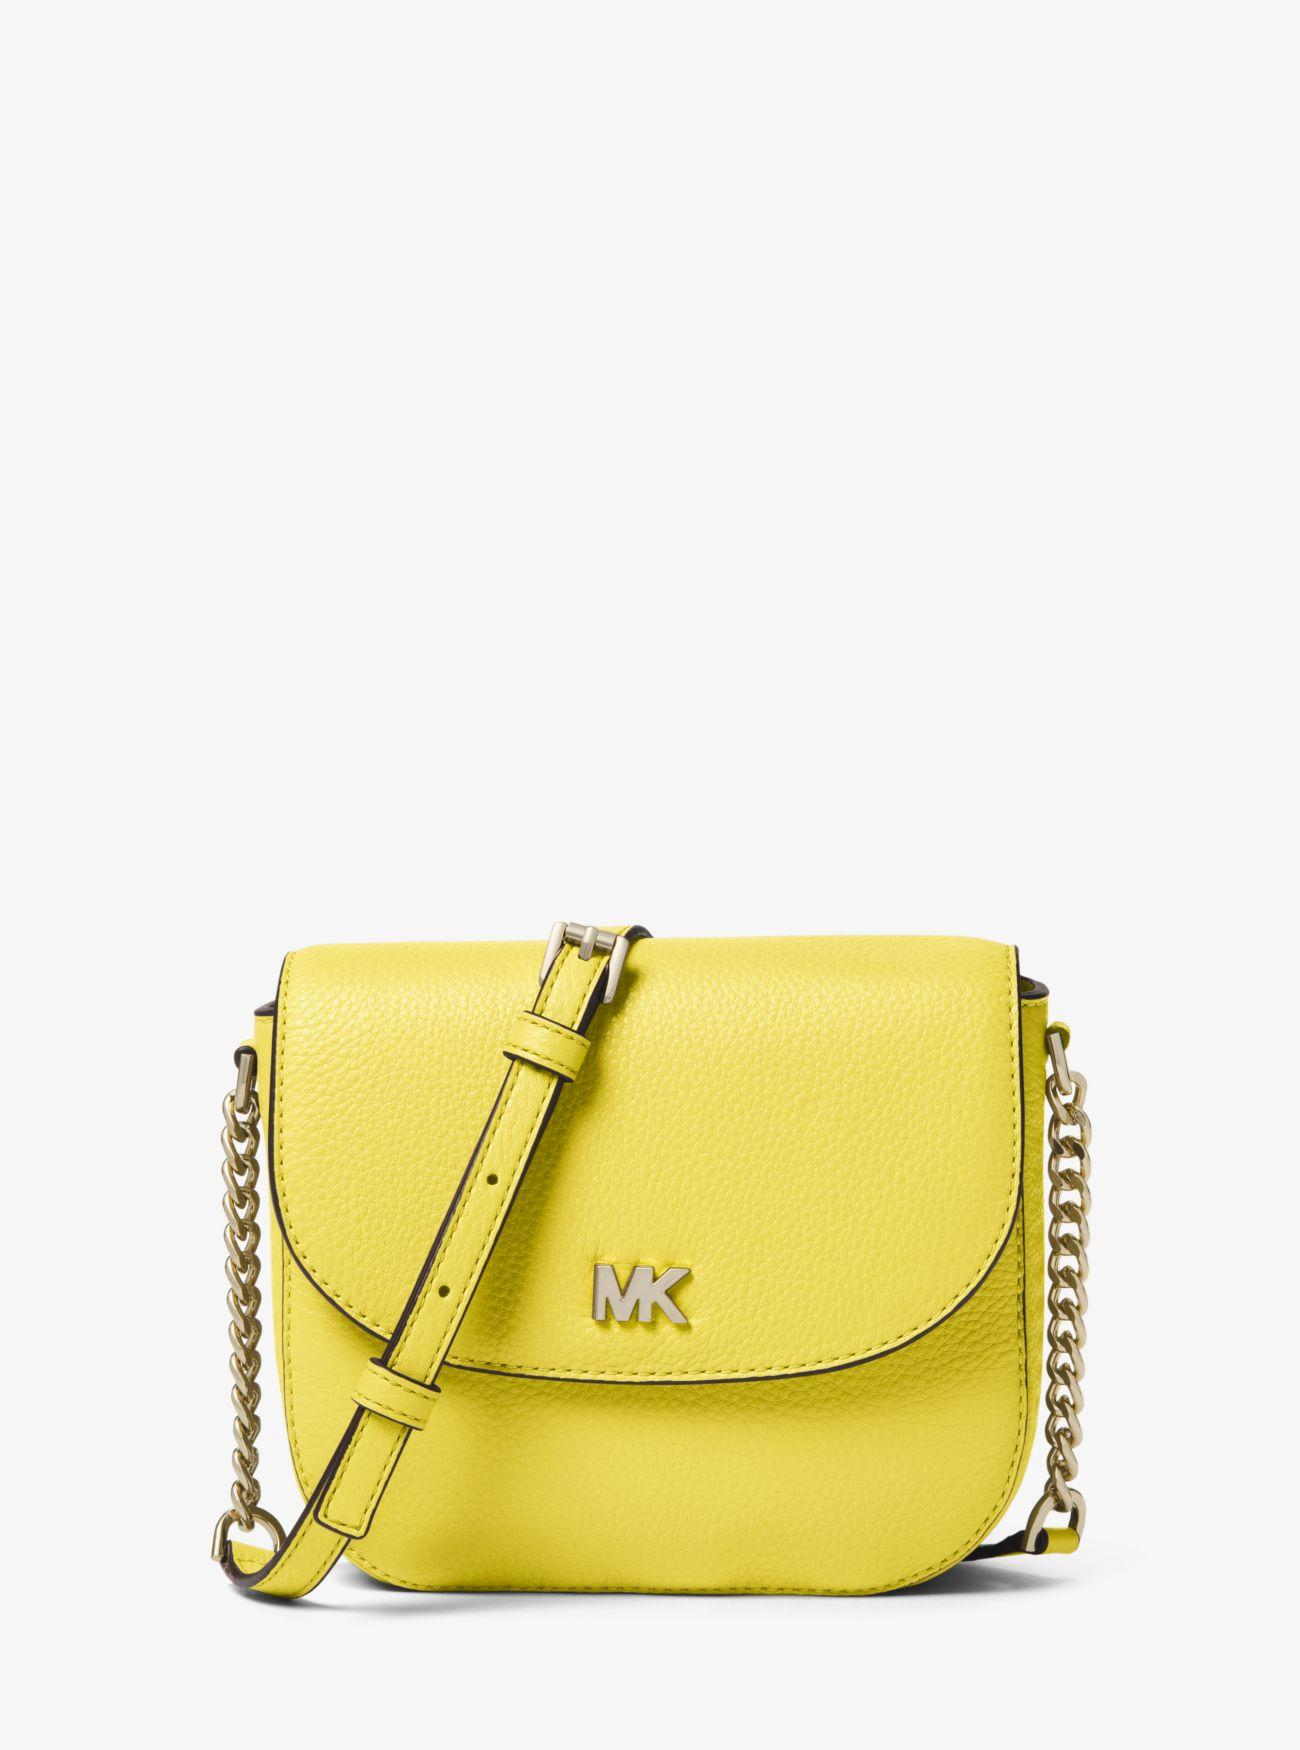 5bcf953144c2 MICHAEL Michael Kors. Women's Yellow Mott Pebbled Leather Dome Crossbody Bag